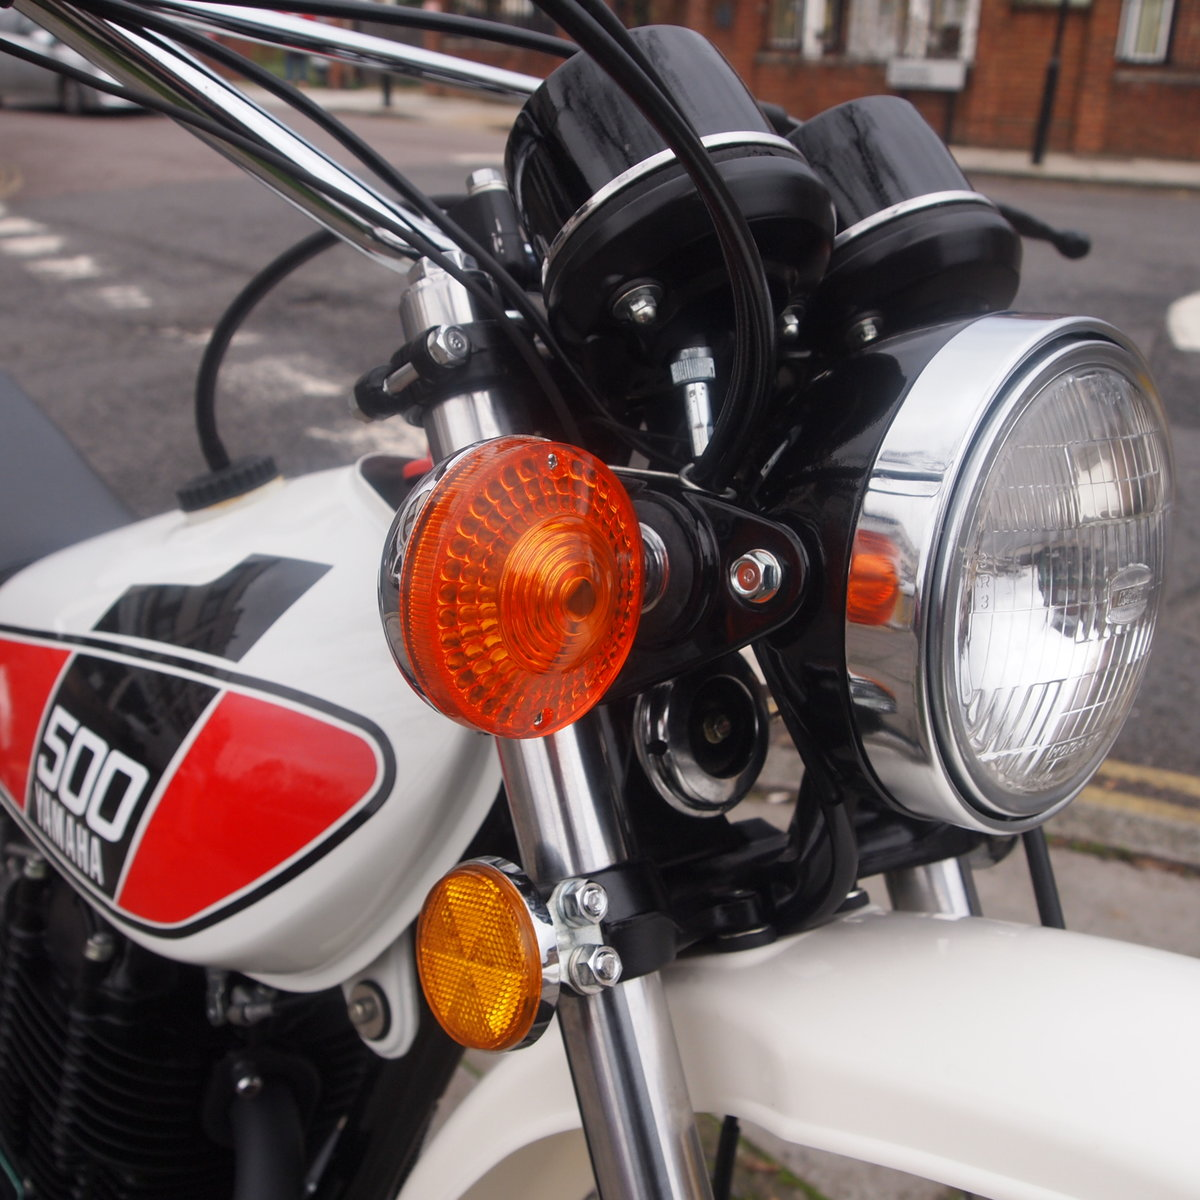 1976 Yamaha XT500 C Enduro, Rare Early Exhaust Model, SOLD. SOLD (picture 5 of 6)